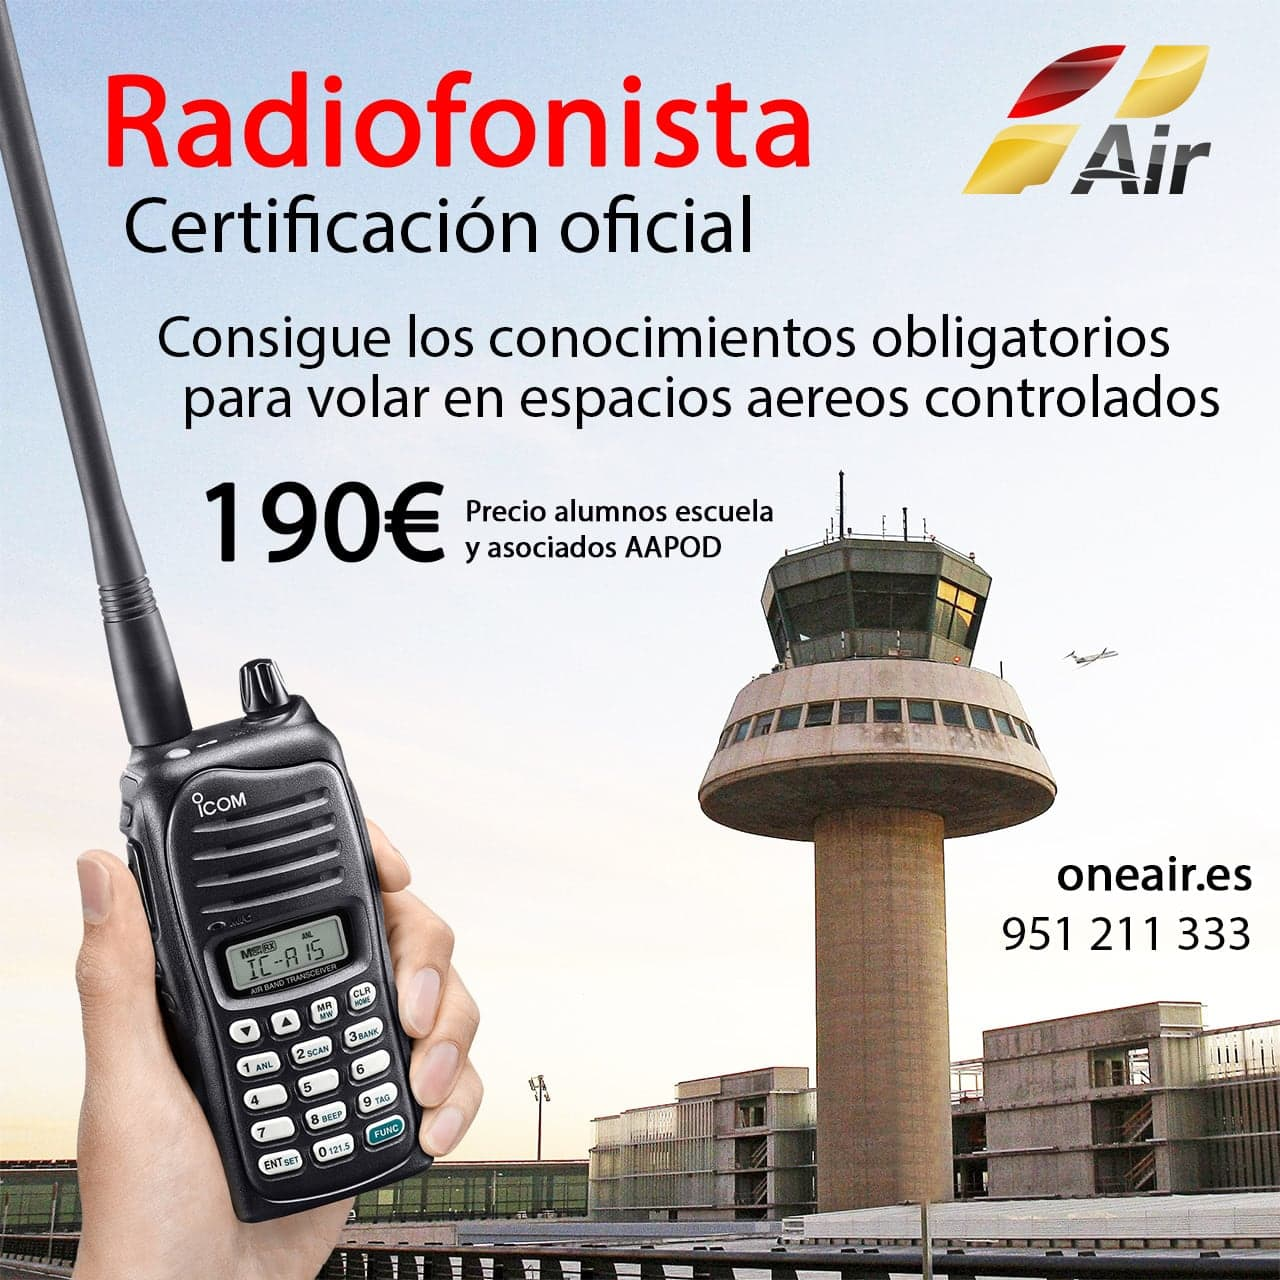 radio operator course in malaga, one airs advertising, hand holding a walkie with airport control tower in the background